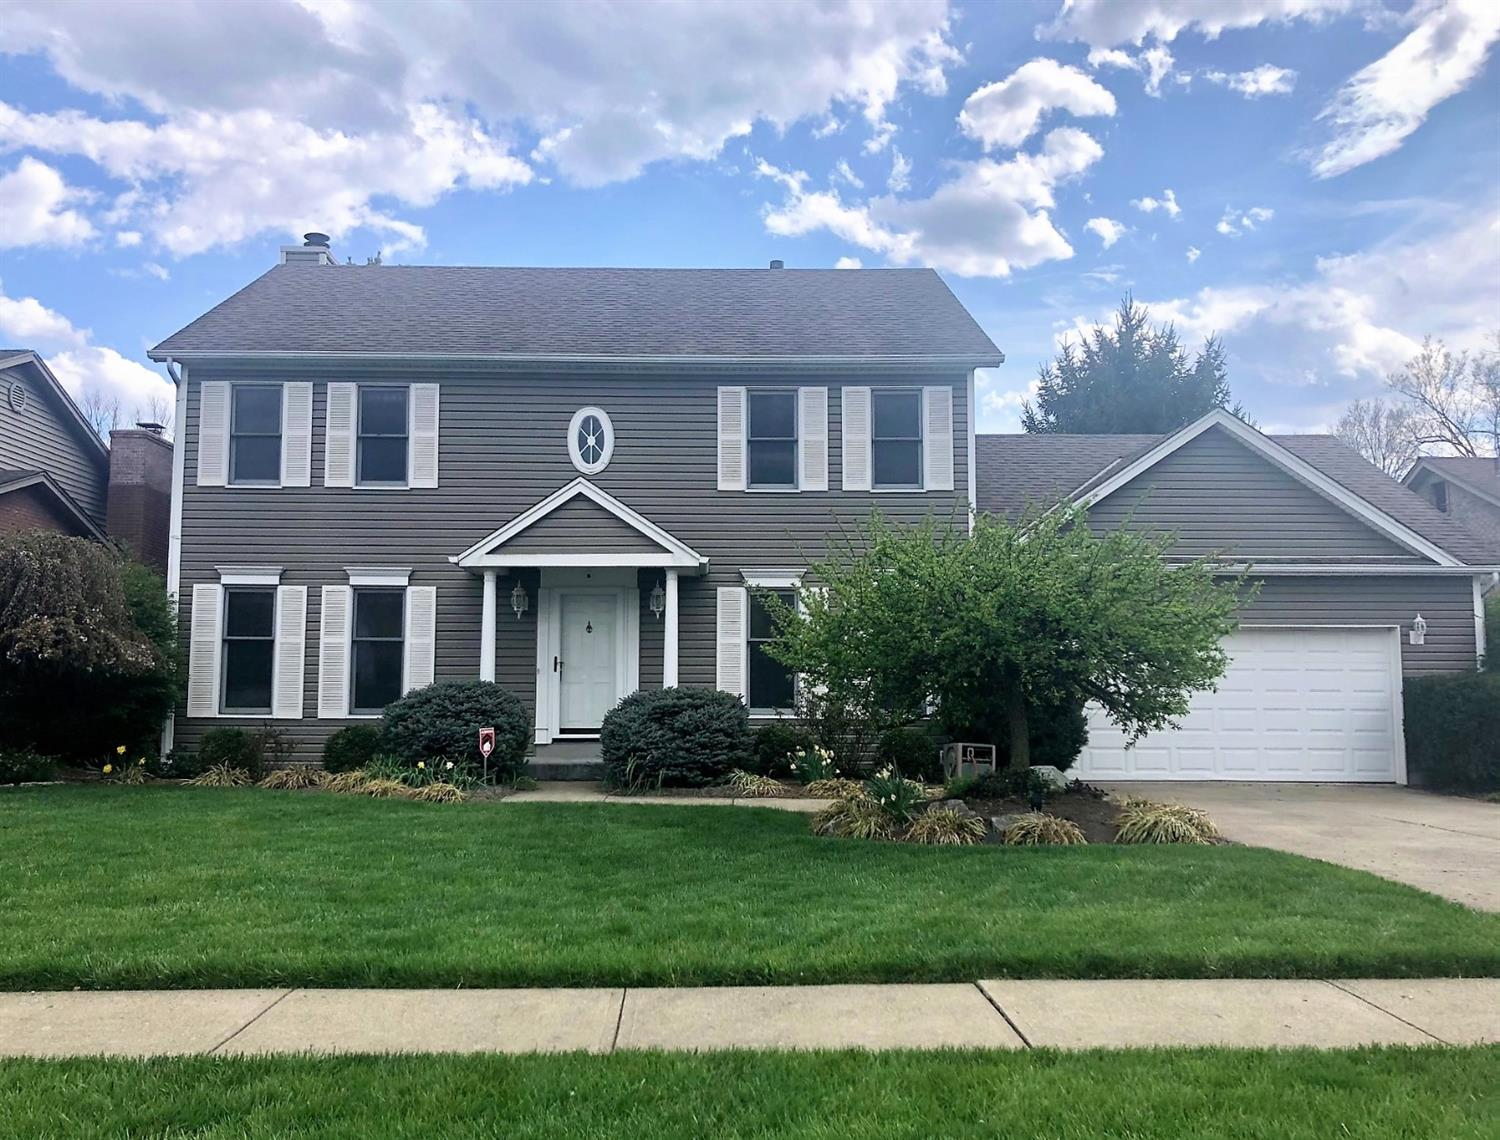 Fantastic home w/many updates like new bamboo flrs in '19, new carpet upstairs in '21, finished LL has a den w/gas fp, 4th bdrm, full bath + lots of closets/storage! Dining room has a gorgeous bar w/granite for entertaining! What a back yard - equipped with large trex deck, hot tub, & beautiful inground pool w/woods as your backdrop! Updated roof & siding (2010), AC (2018) & HWH (2016). Oversized garage. Offers due by Tue 4/20 at 7pm. Seller reserves the right to accept an offer at anytime prior